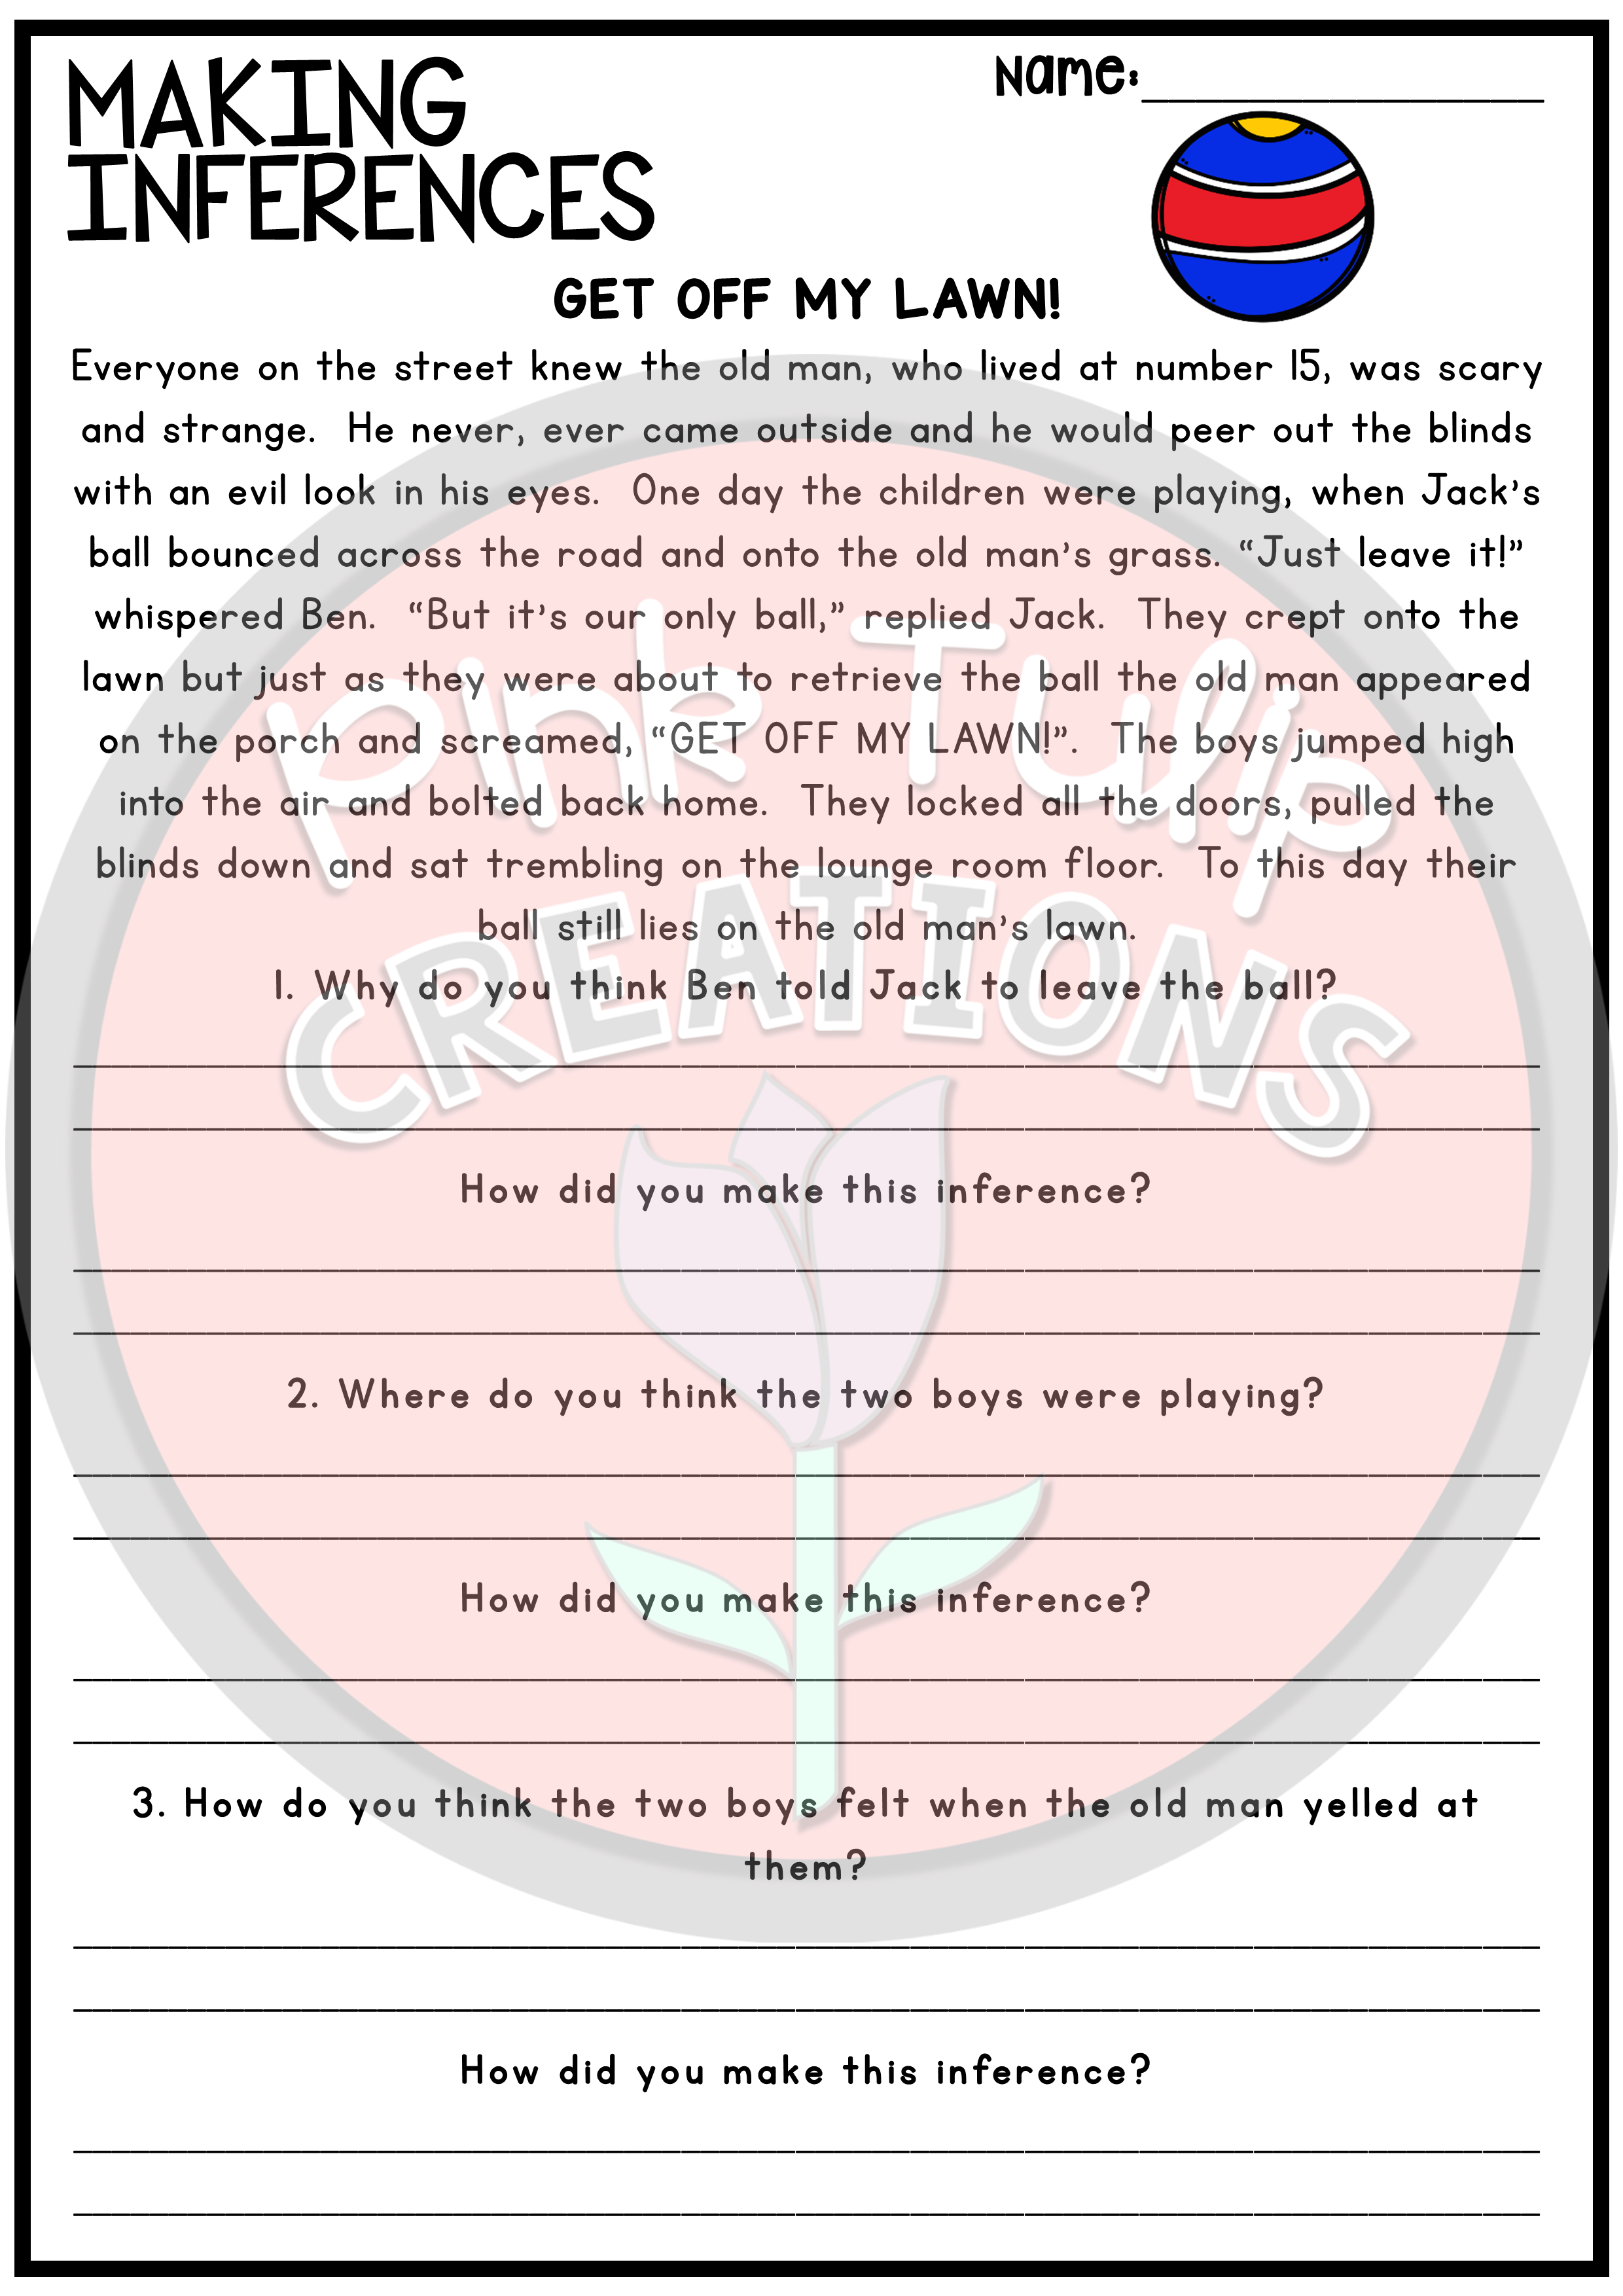 Making Inferences and Drawing Conclusions - Reading Worksheet Pack   Making  inferences [ 3508 x 2480 Pixel ]